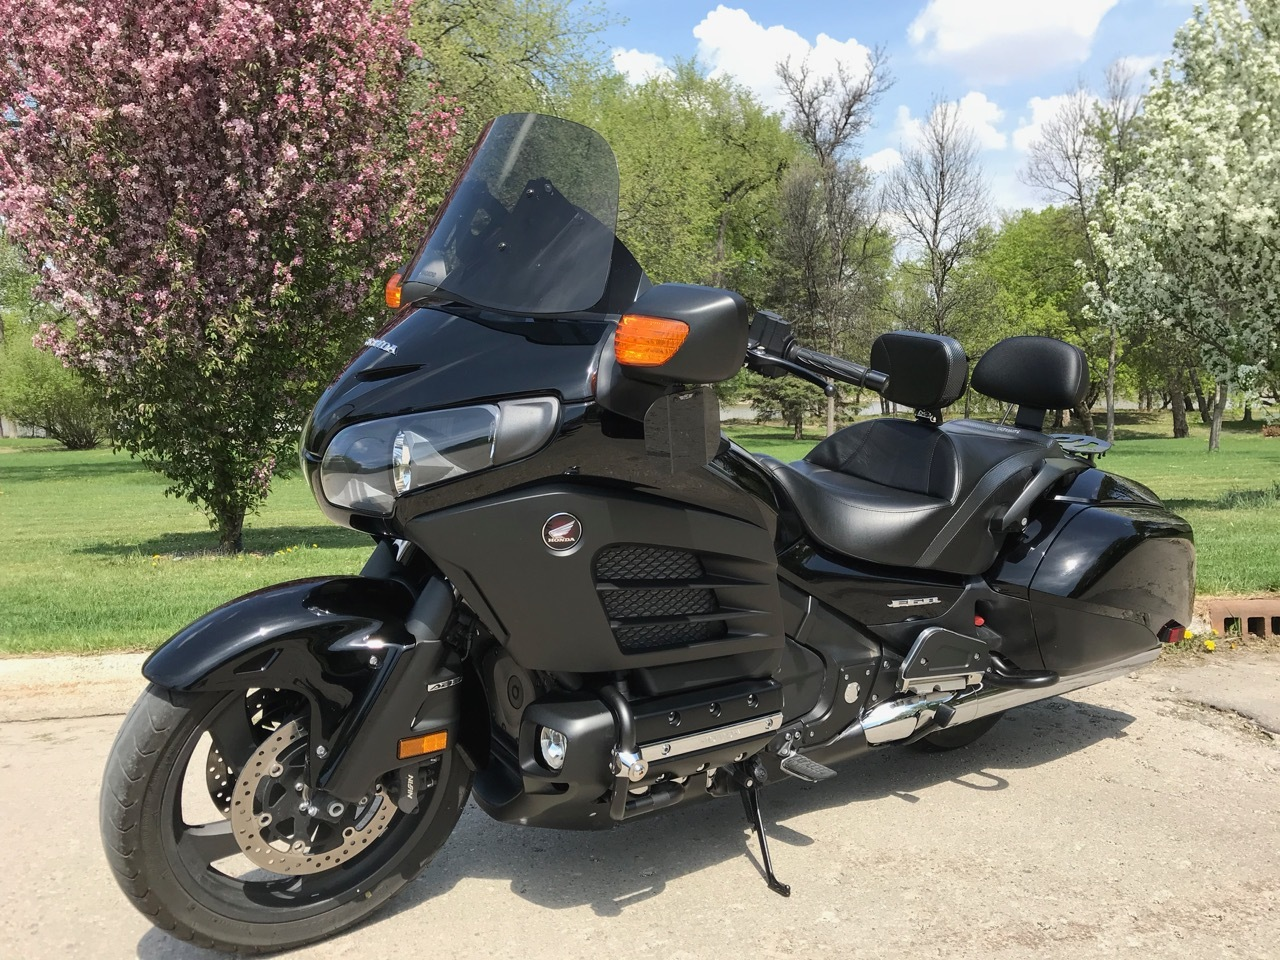 2018 Goldwing And Tour More Details W Pricing Theglforum Gl1800 Cruise Wiring Schematic 2013 Black F6b